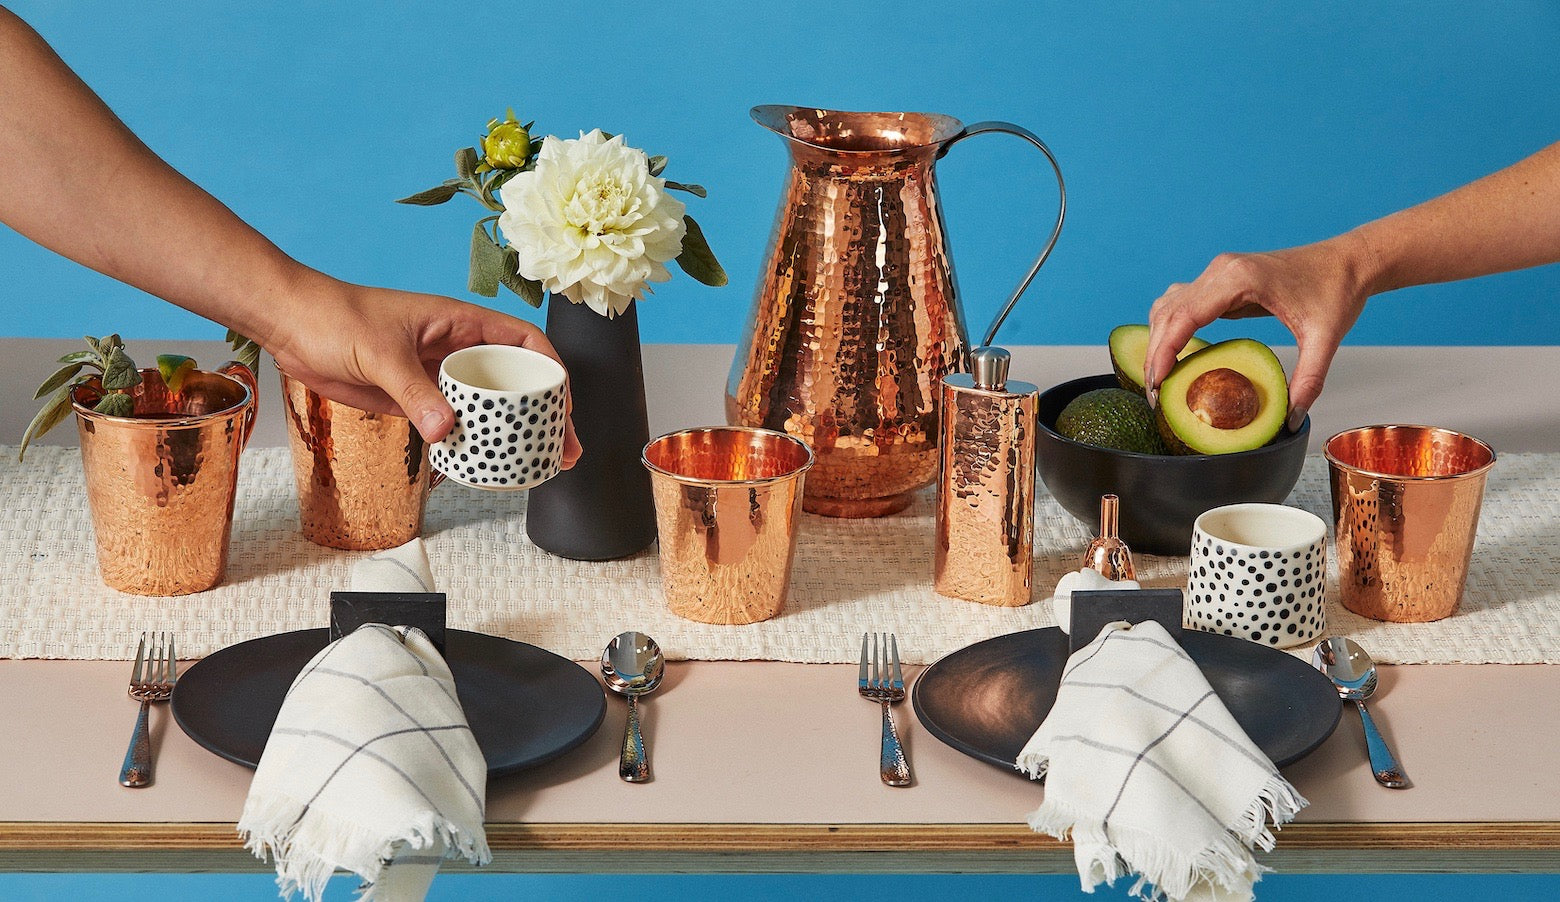 Sertodo Copper recycled copper fair trade drinkware and cookware